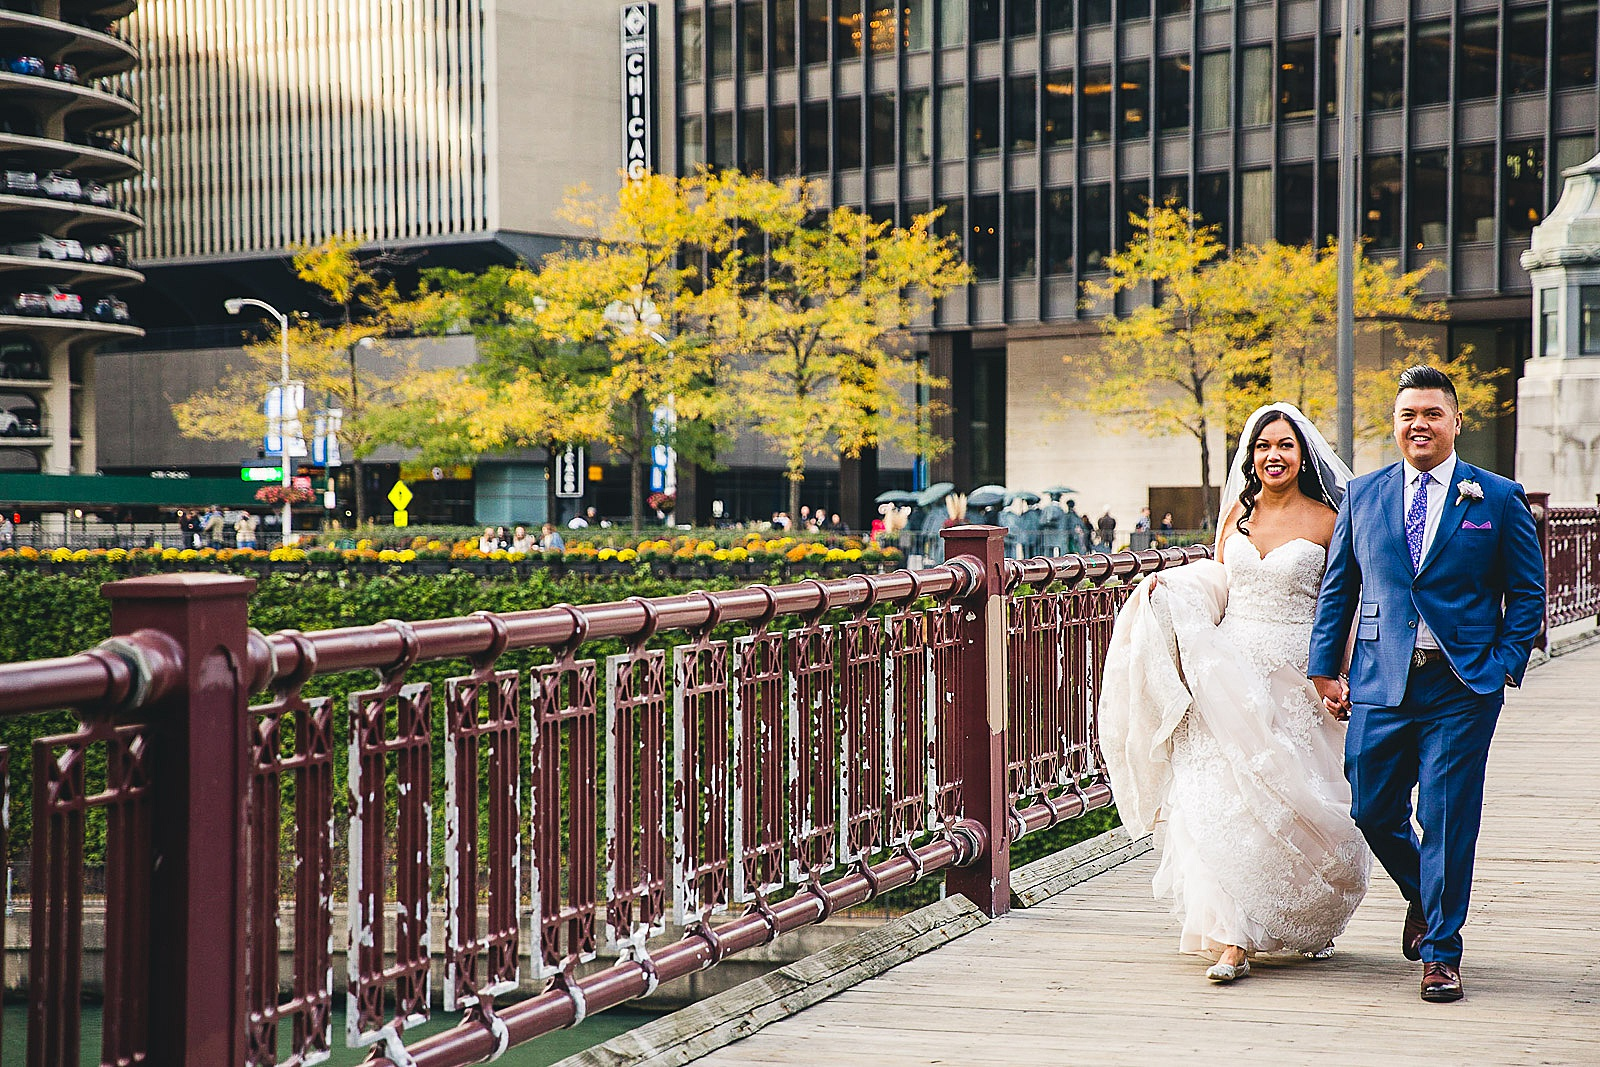 34 chicago bridges wedding couple - LondonHouse Wedding Photos // Mari + Kevin